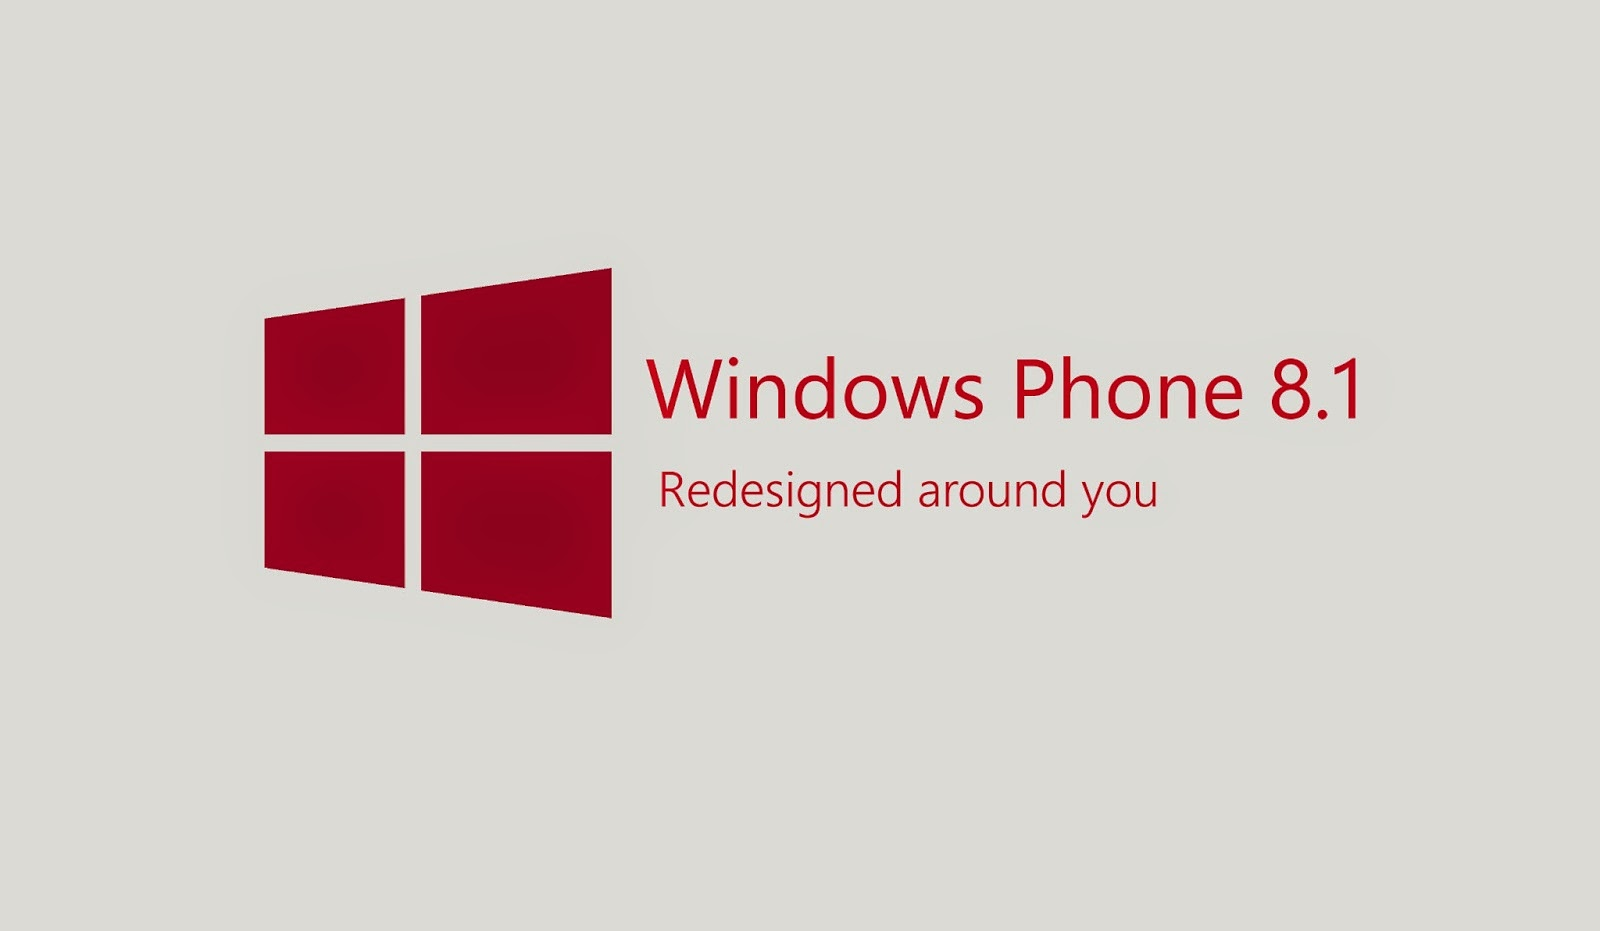 Windows Phone 8.1, Windows Phone 8,update ke Windows Phone 8.1, cara update Windows Phone 8, Lumia 520 , Lumia 620 a , Lumia 920 , HTC 8X , Lumia 1520, Update Lumia 520 , Update Lumia 620 a , Update Lumia 920 , Update HTC 8X , Update Lumia 1520, Update Windows Phone 8.1Lumia 520 , Update Windows Phone 8.1 Lumia 620 a , UpdateWindows Phone 8.1 Lumia 920 , Update Windows Phone 8.1 HTC 8X , Update Lumia Windows Phone 8.1 1520.